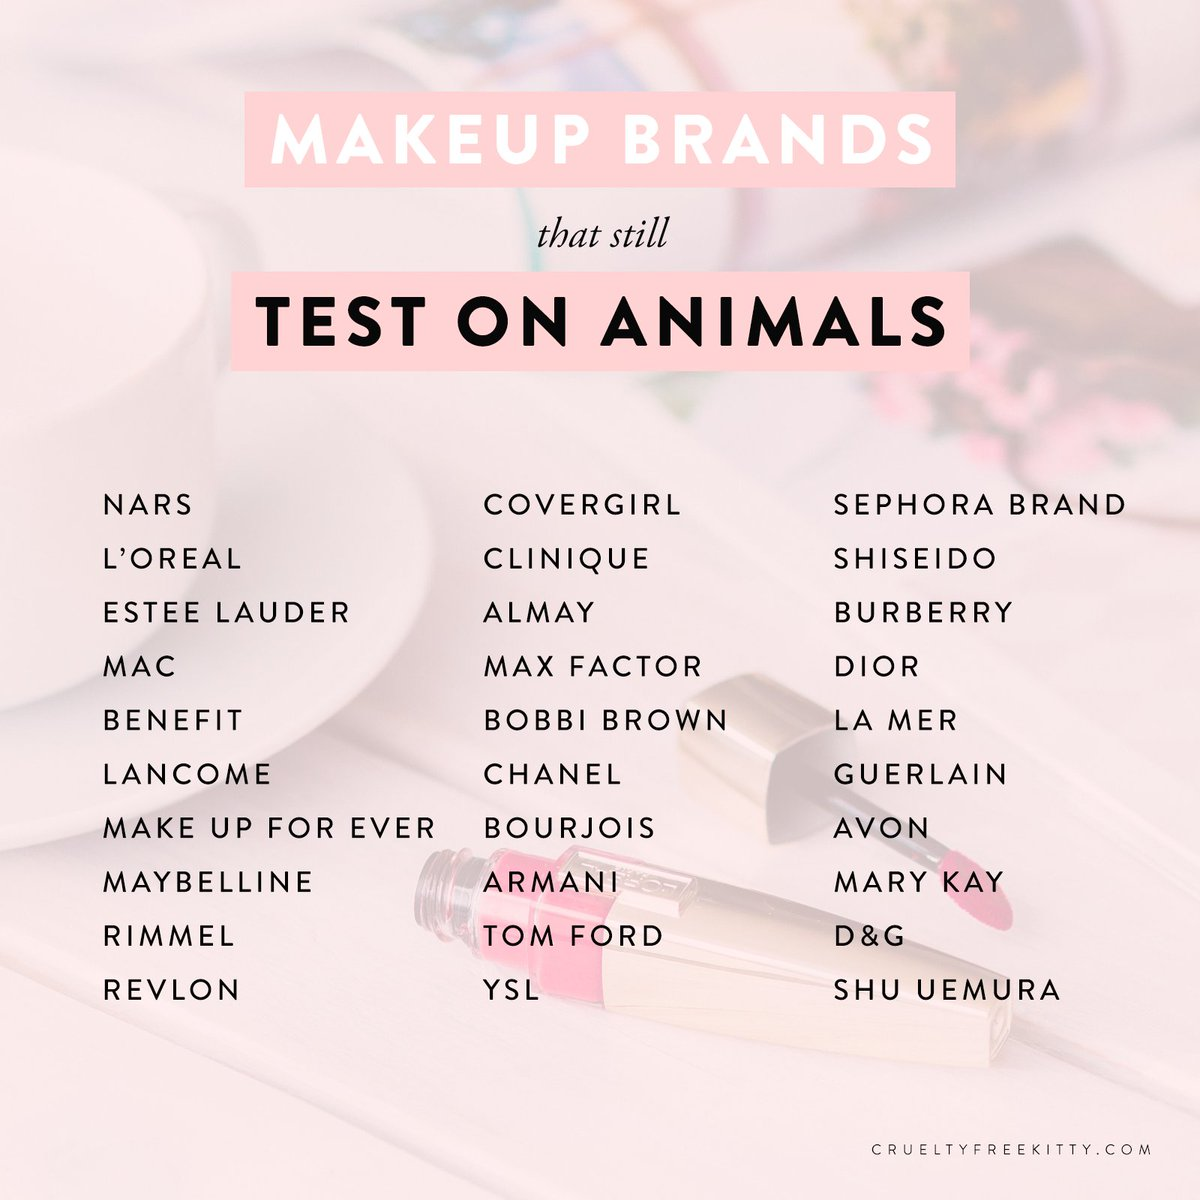 These Makeup Brands Still Test On